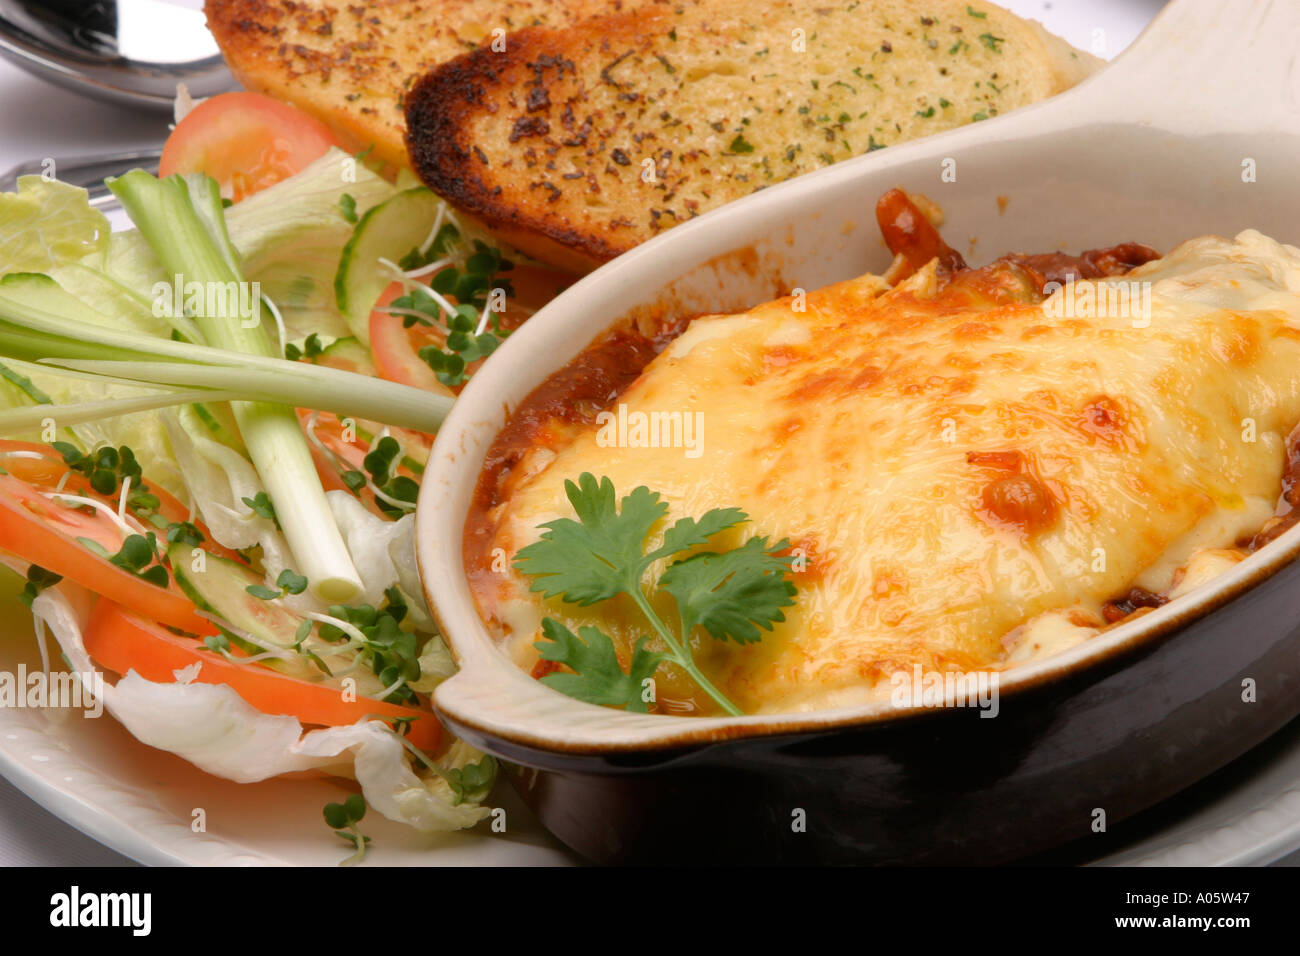 Food Italian Main Course Lasagne And Salad With Garlic Bread